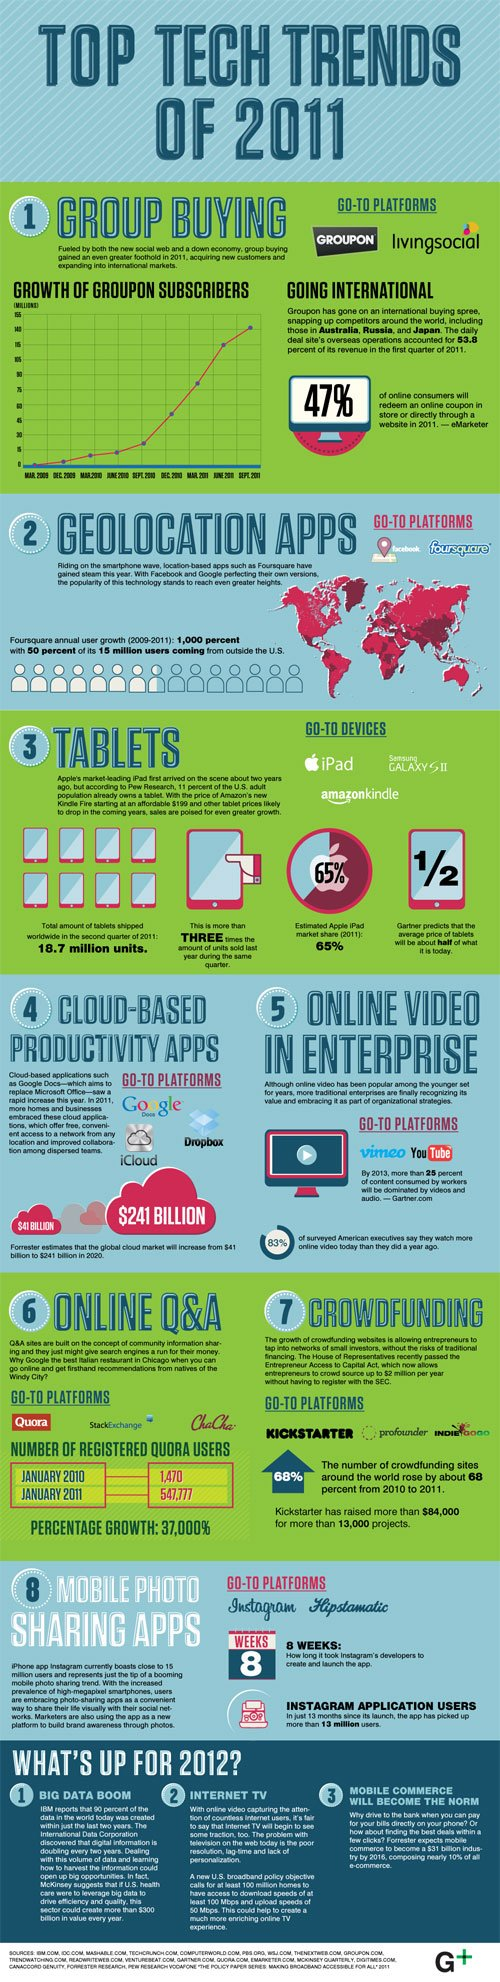 Top Tech Trends 2011 Preview